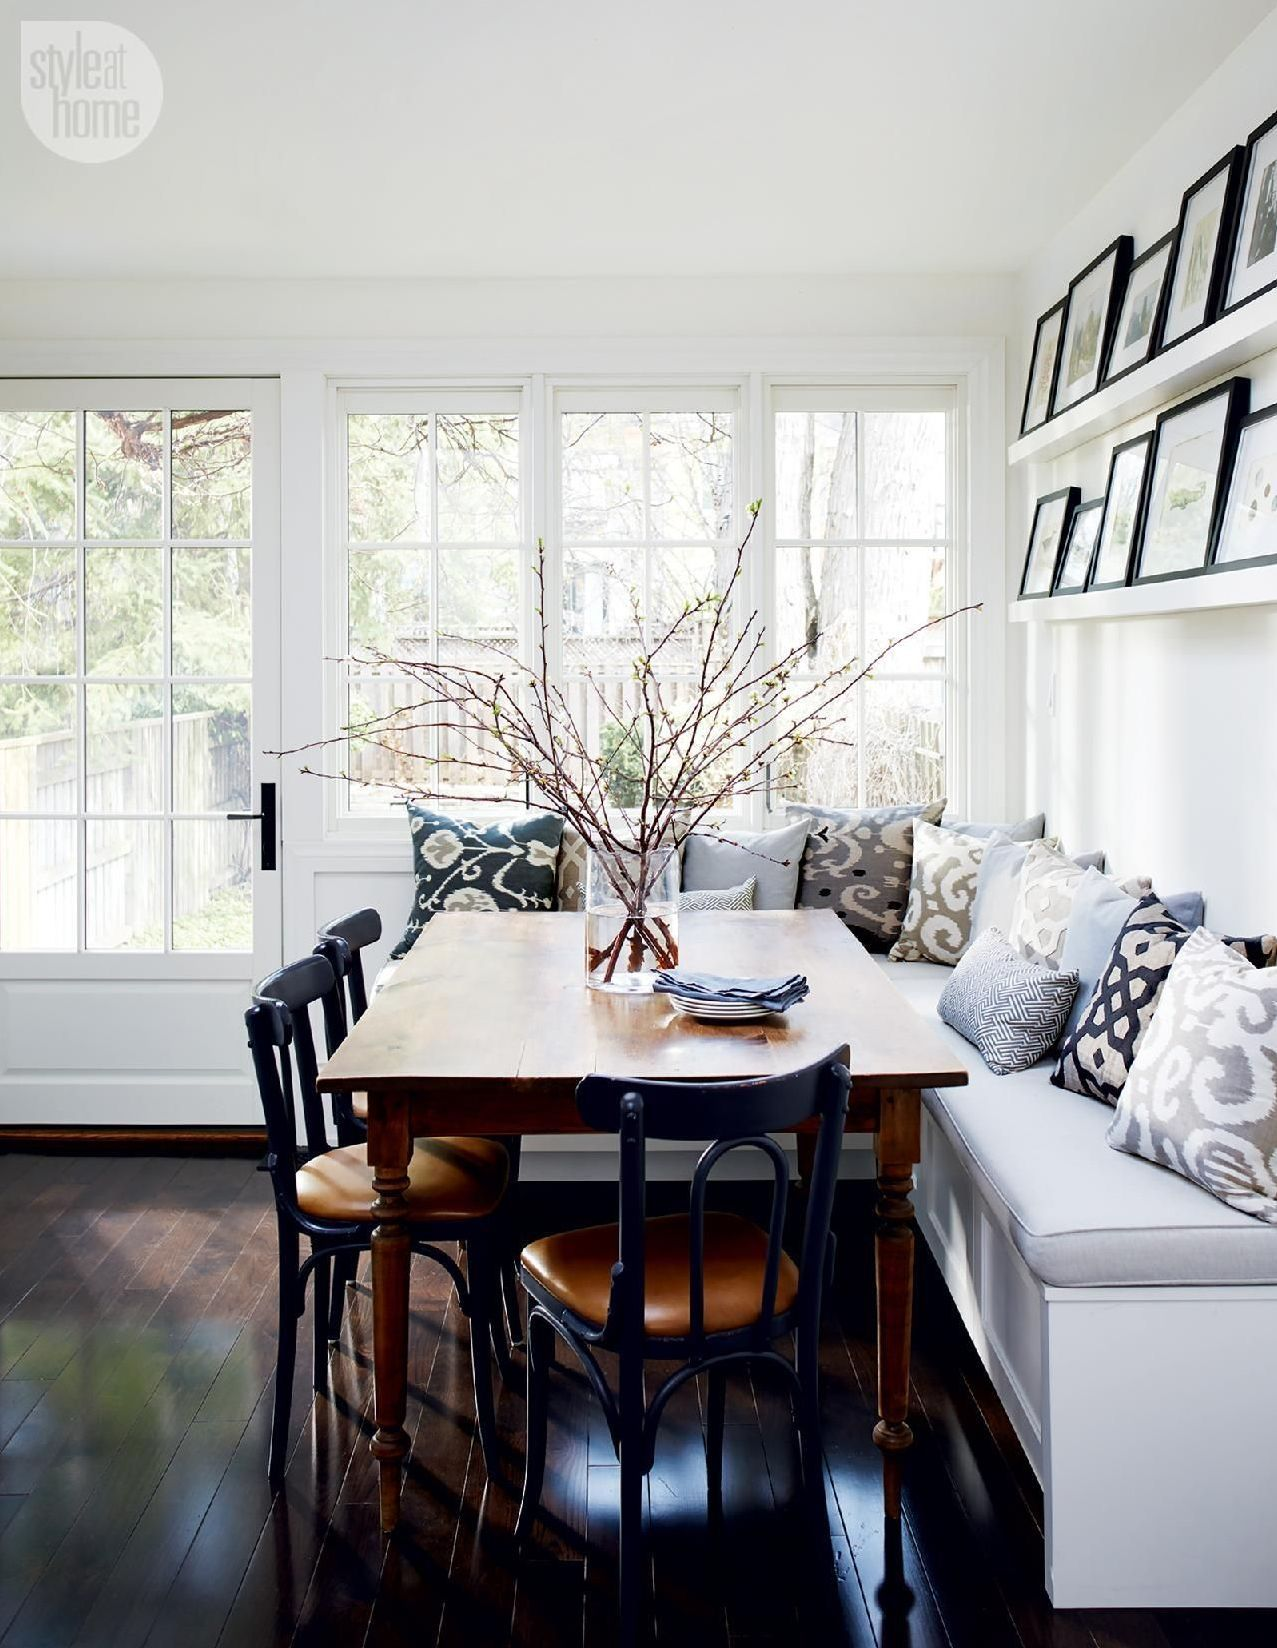 6 extraordinary diy kitchen bench seating banquette